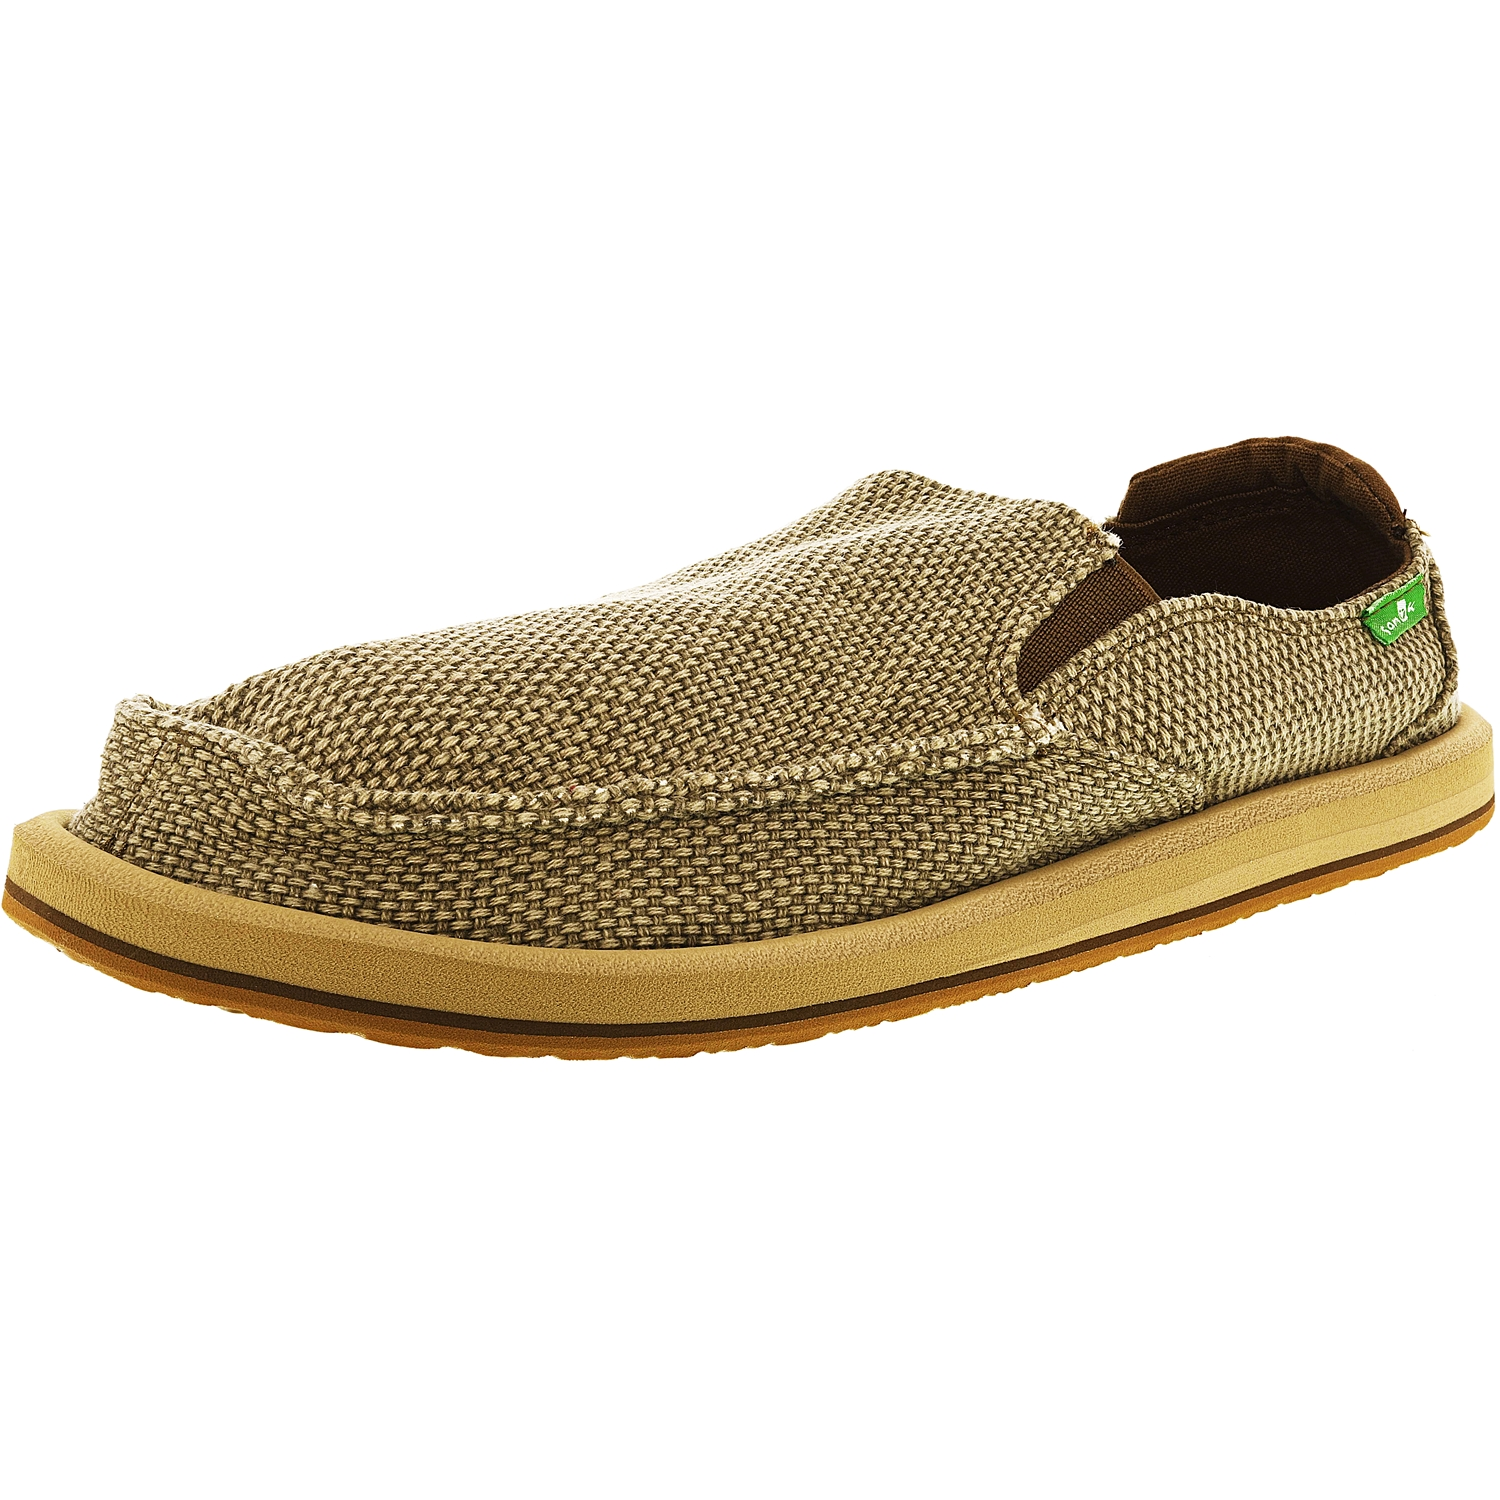 FOOTWEAR - Low-tops & sneakers Sanuk